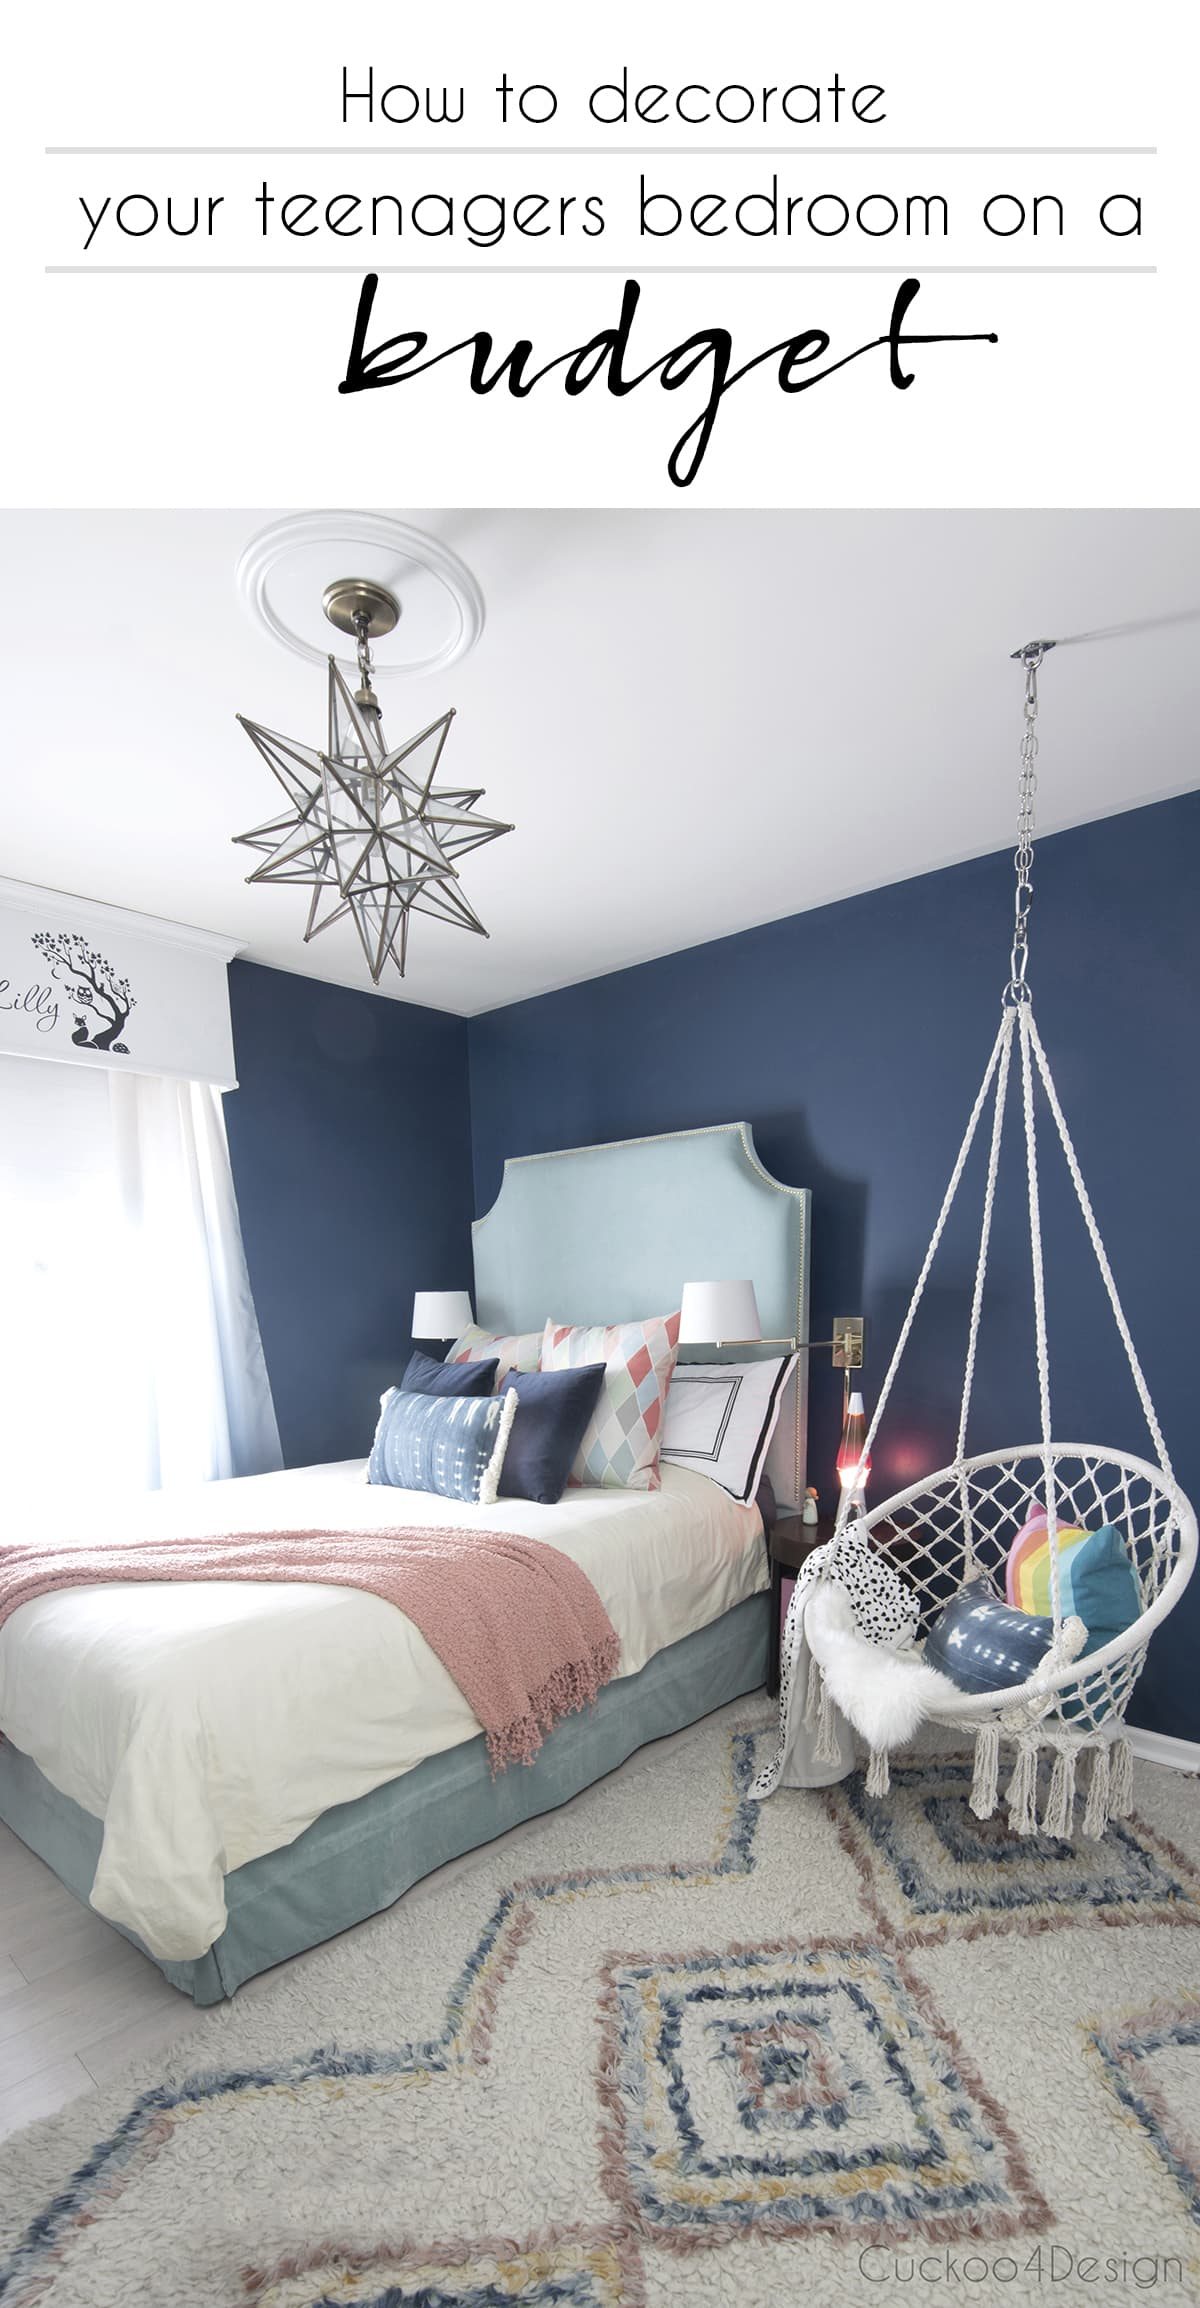 How To Decorate Your Teenagers Bedroom On A Budget